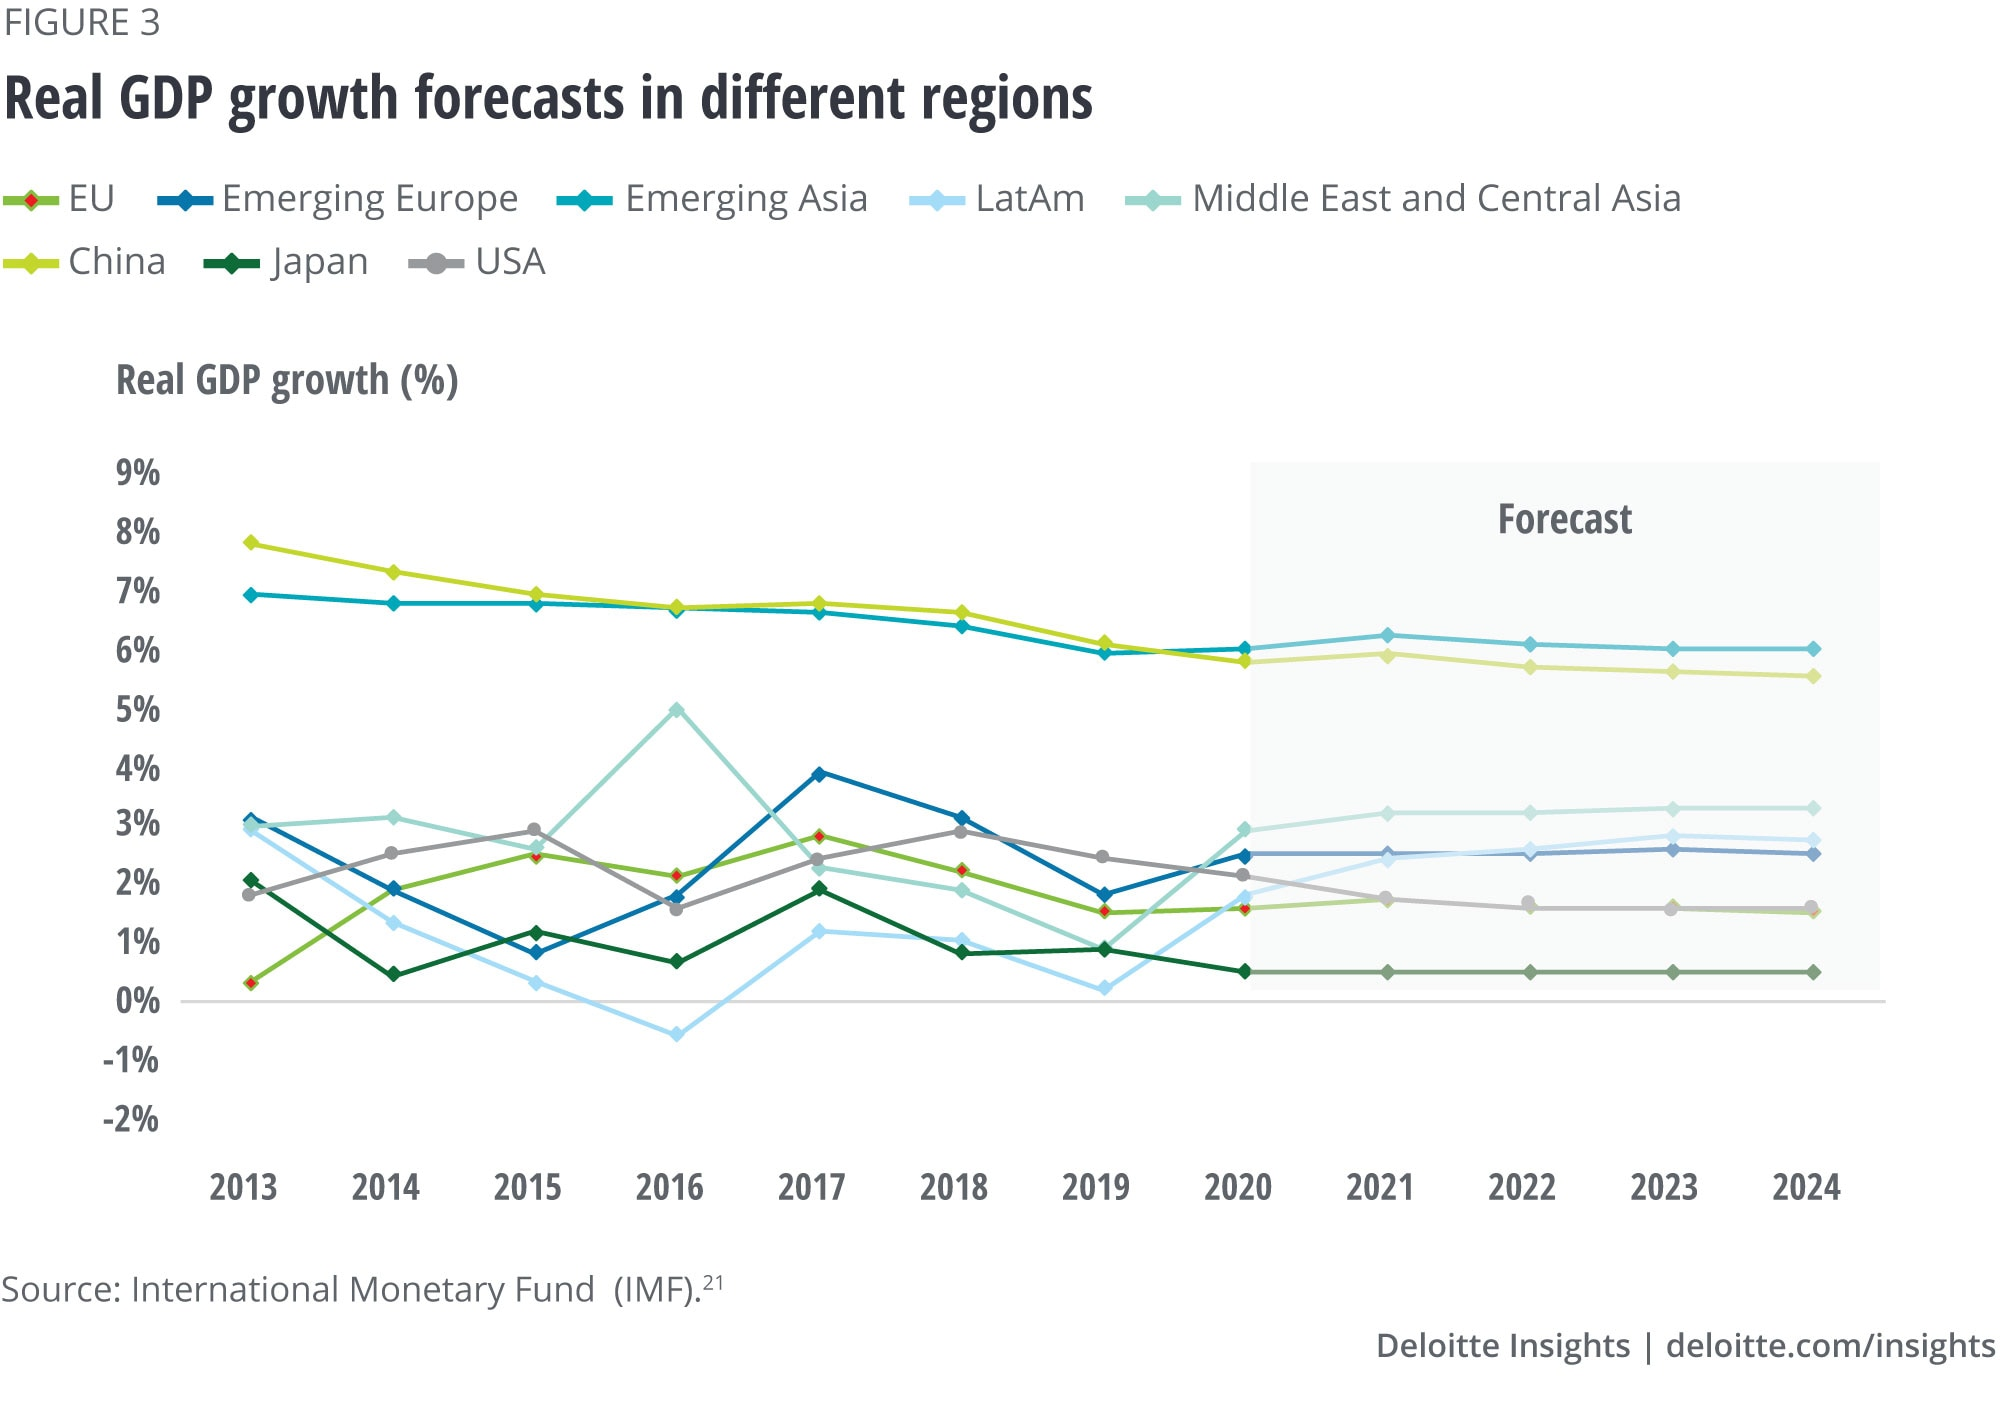 Real GDP growth forecasts in different regions (percent)